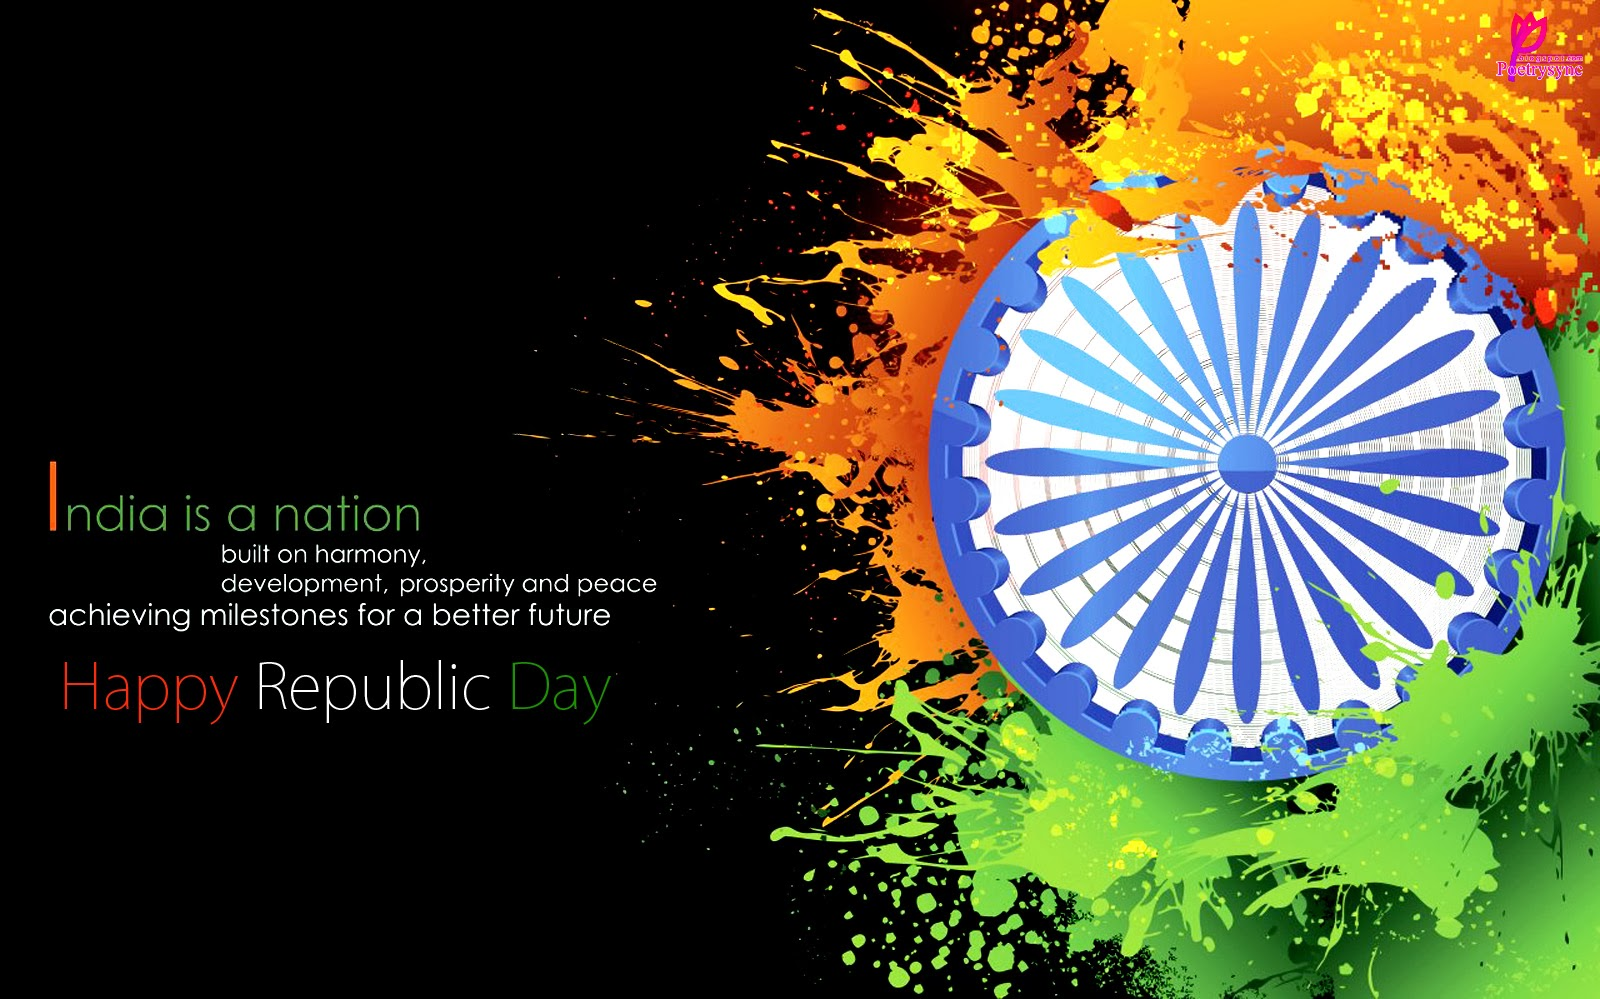 Bharat Darshan - 67th Republic Day Greetings - Blessings of Peace and Prosperity.